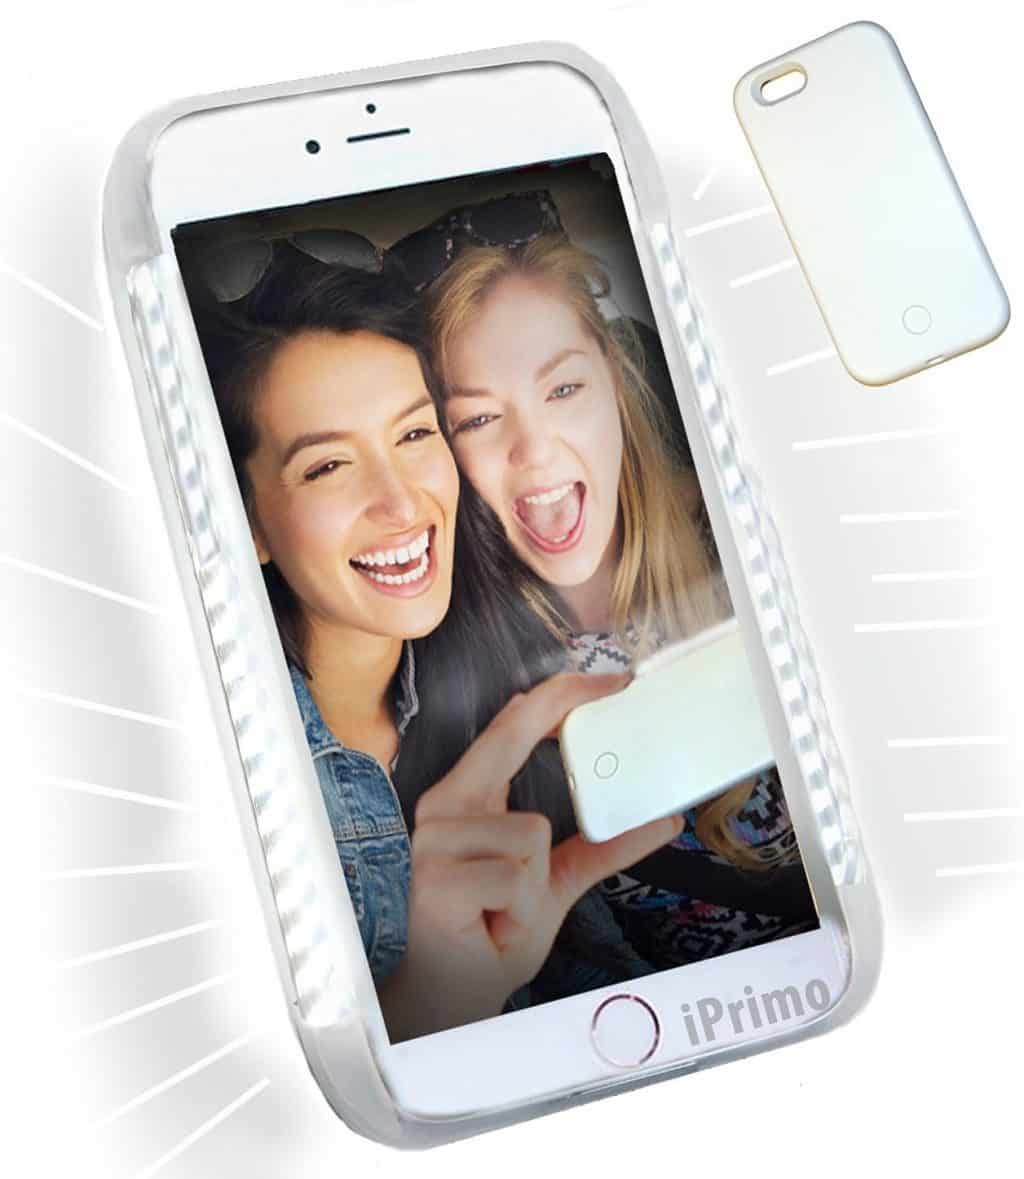 Soft Bright LED Lighting (Dimmable) Cell Phone Case by iPrimio